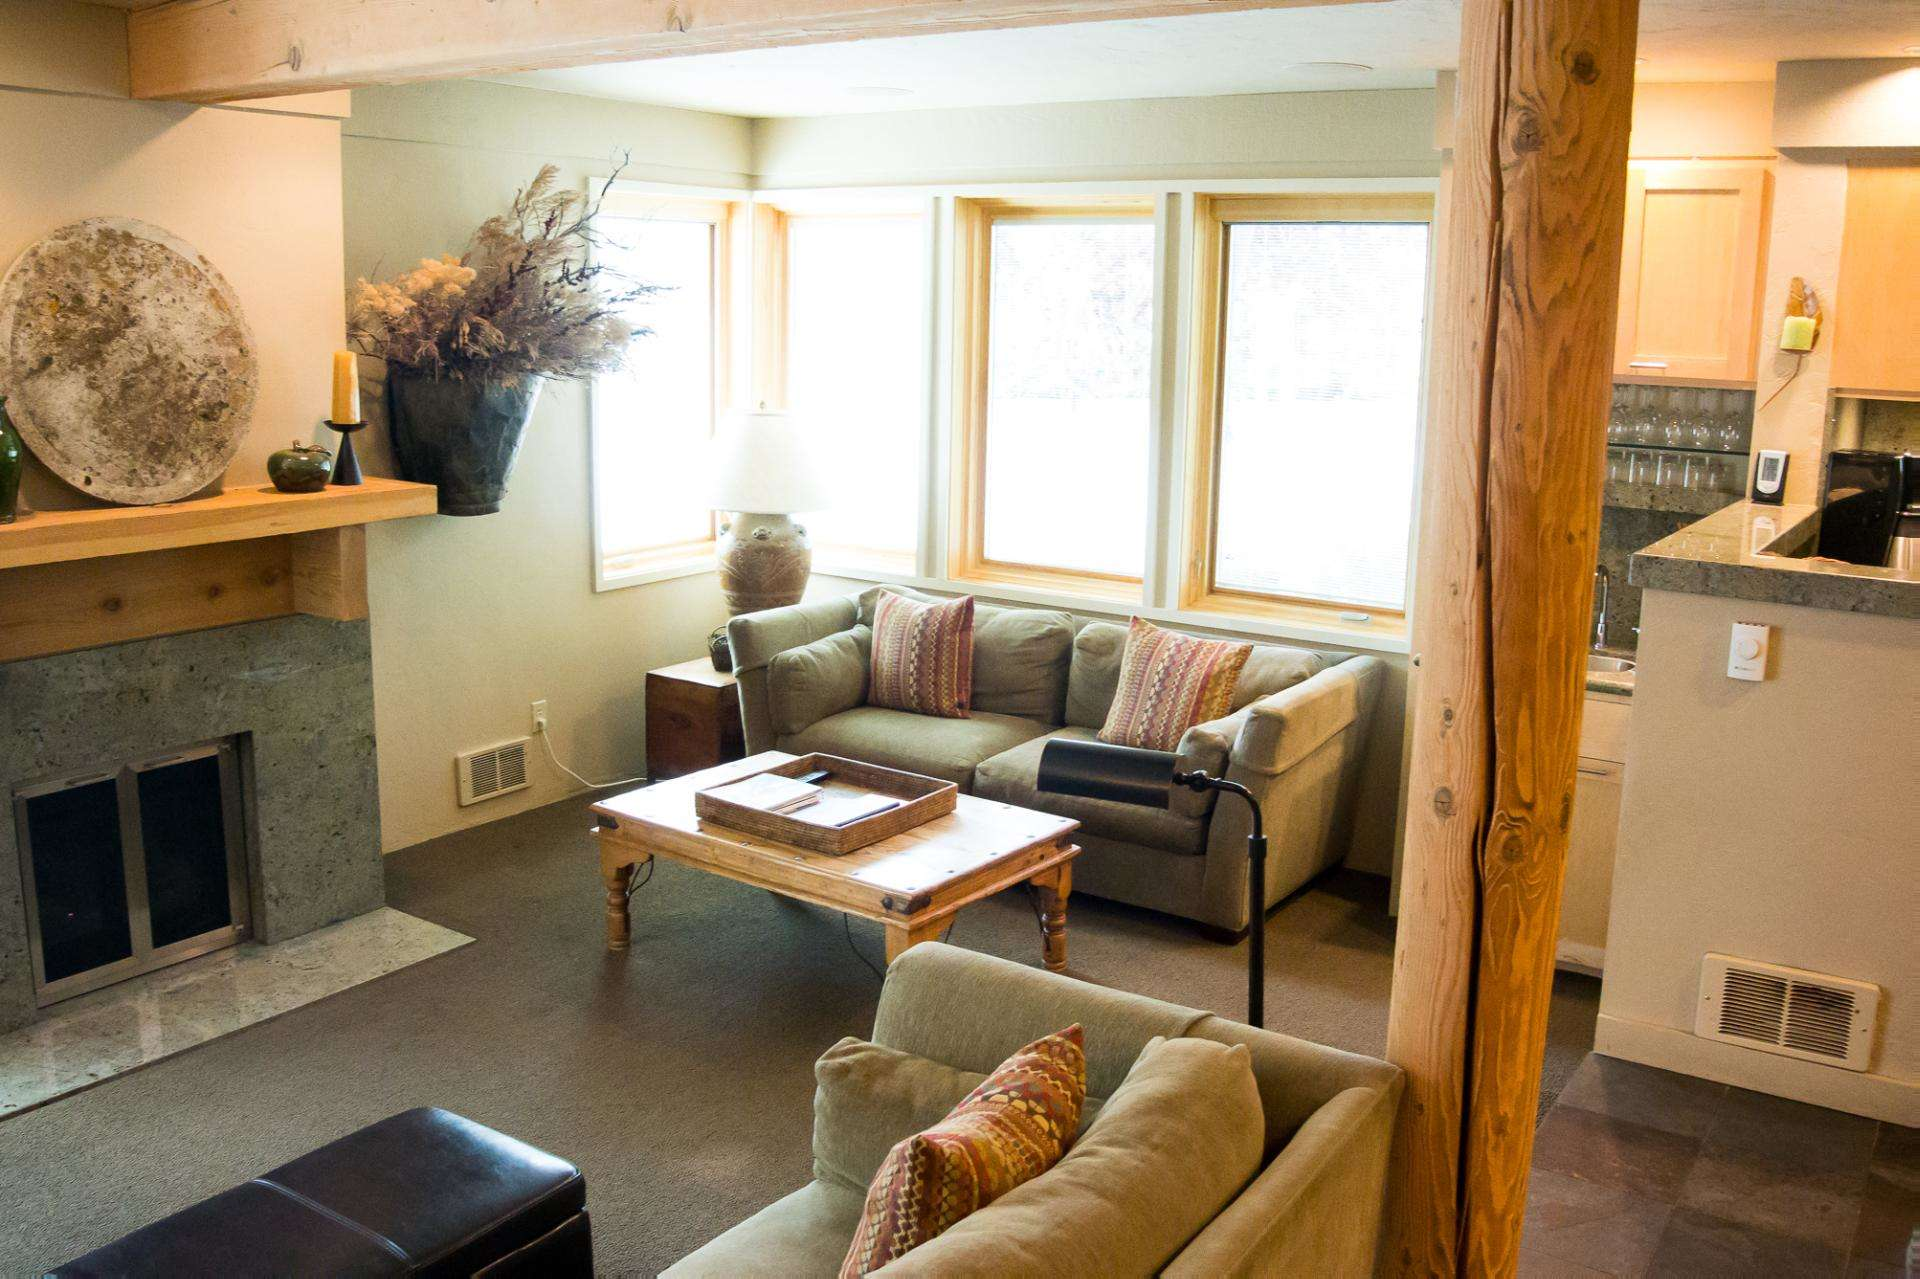 Luxury vacation rentals usa - Idaho - Sun valley - Warm springs  - Prospector 134 - Image 1/12